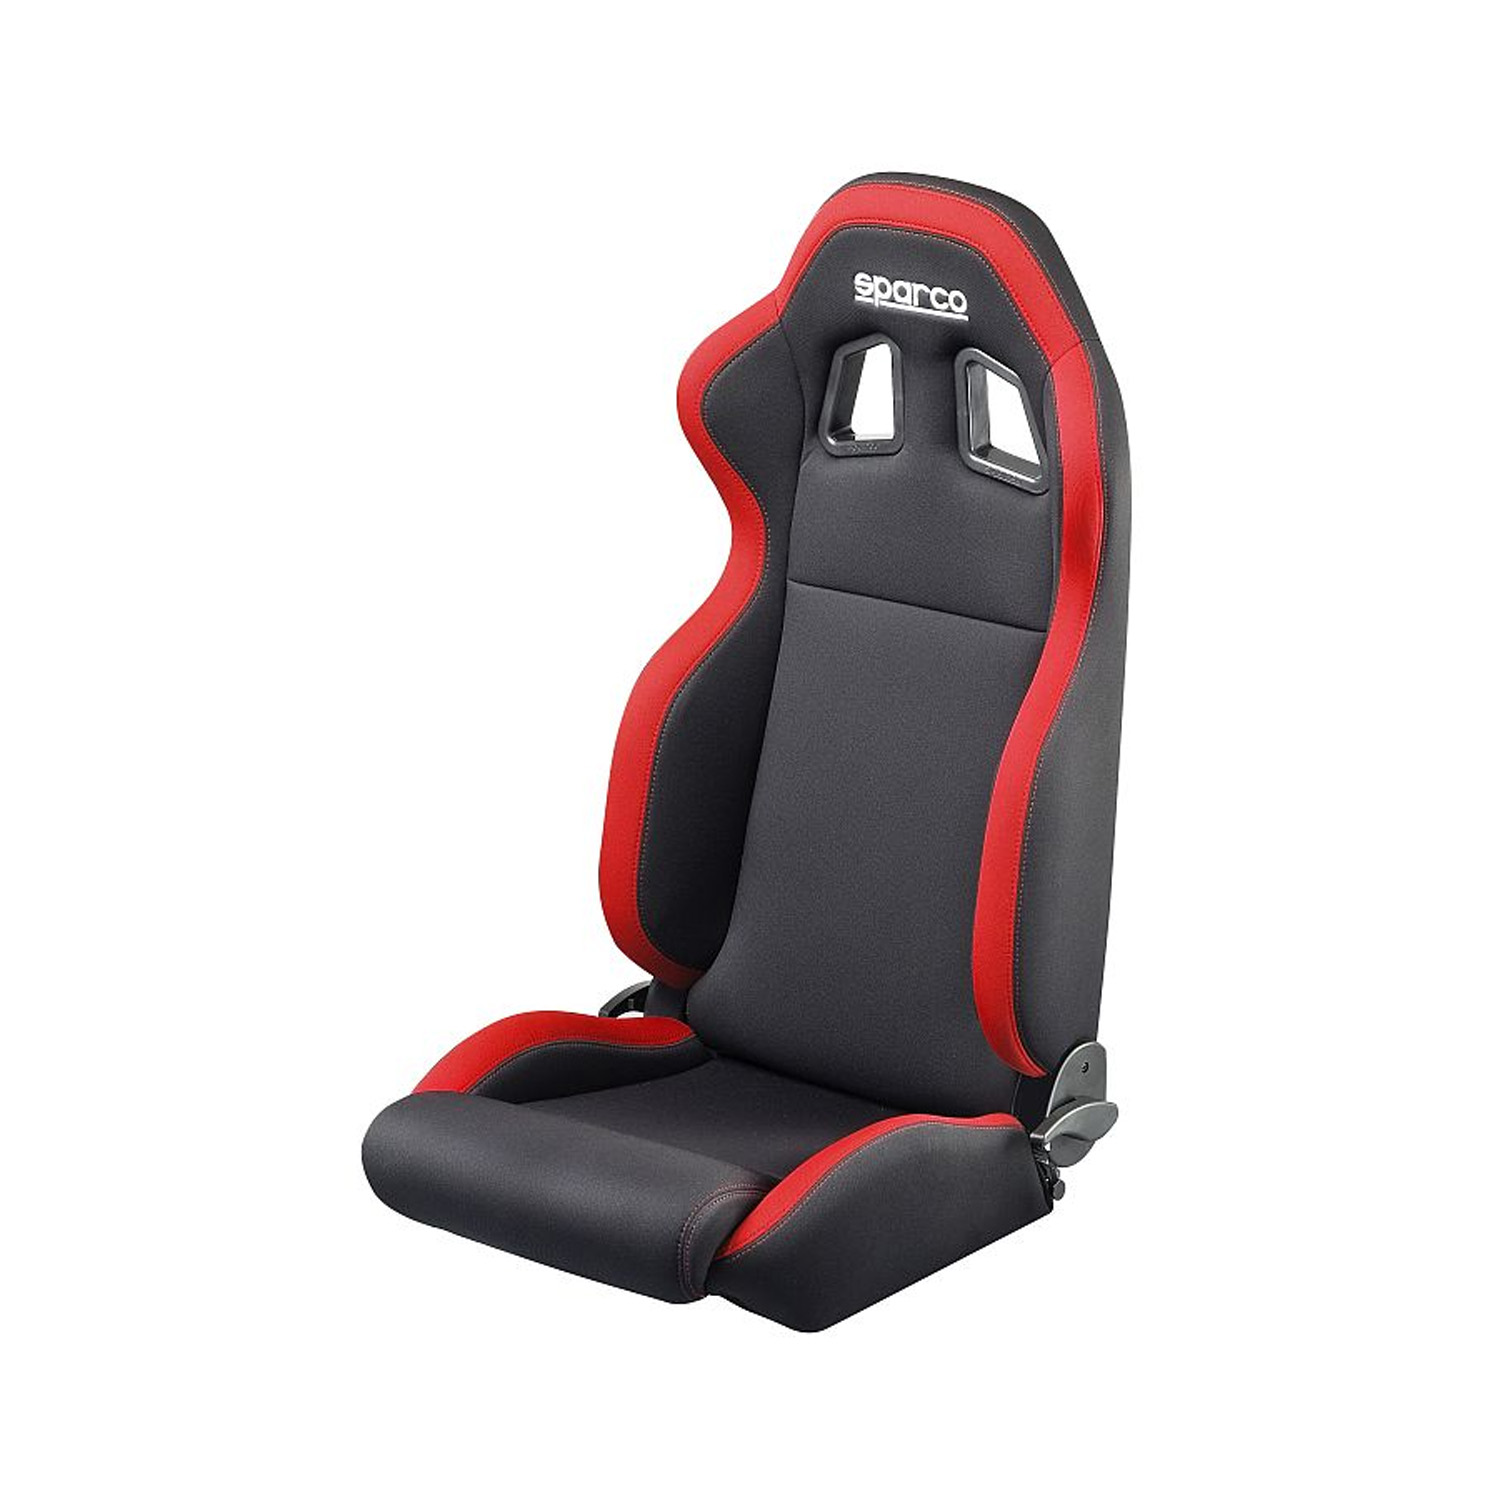 Sparco Italy R100 Black And Red Tuning Car Seat Black Red Shop